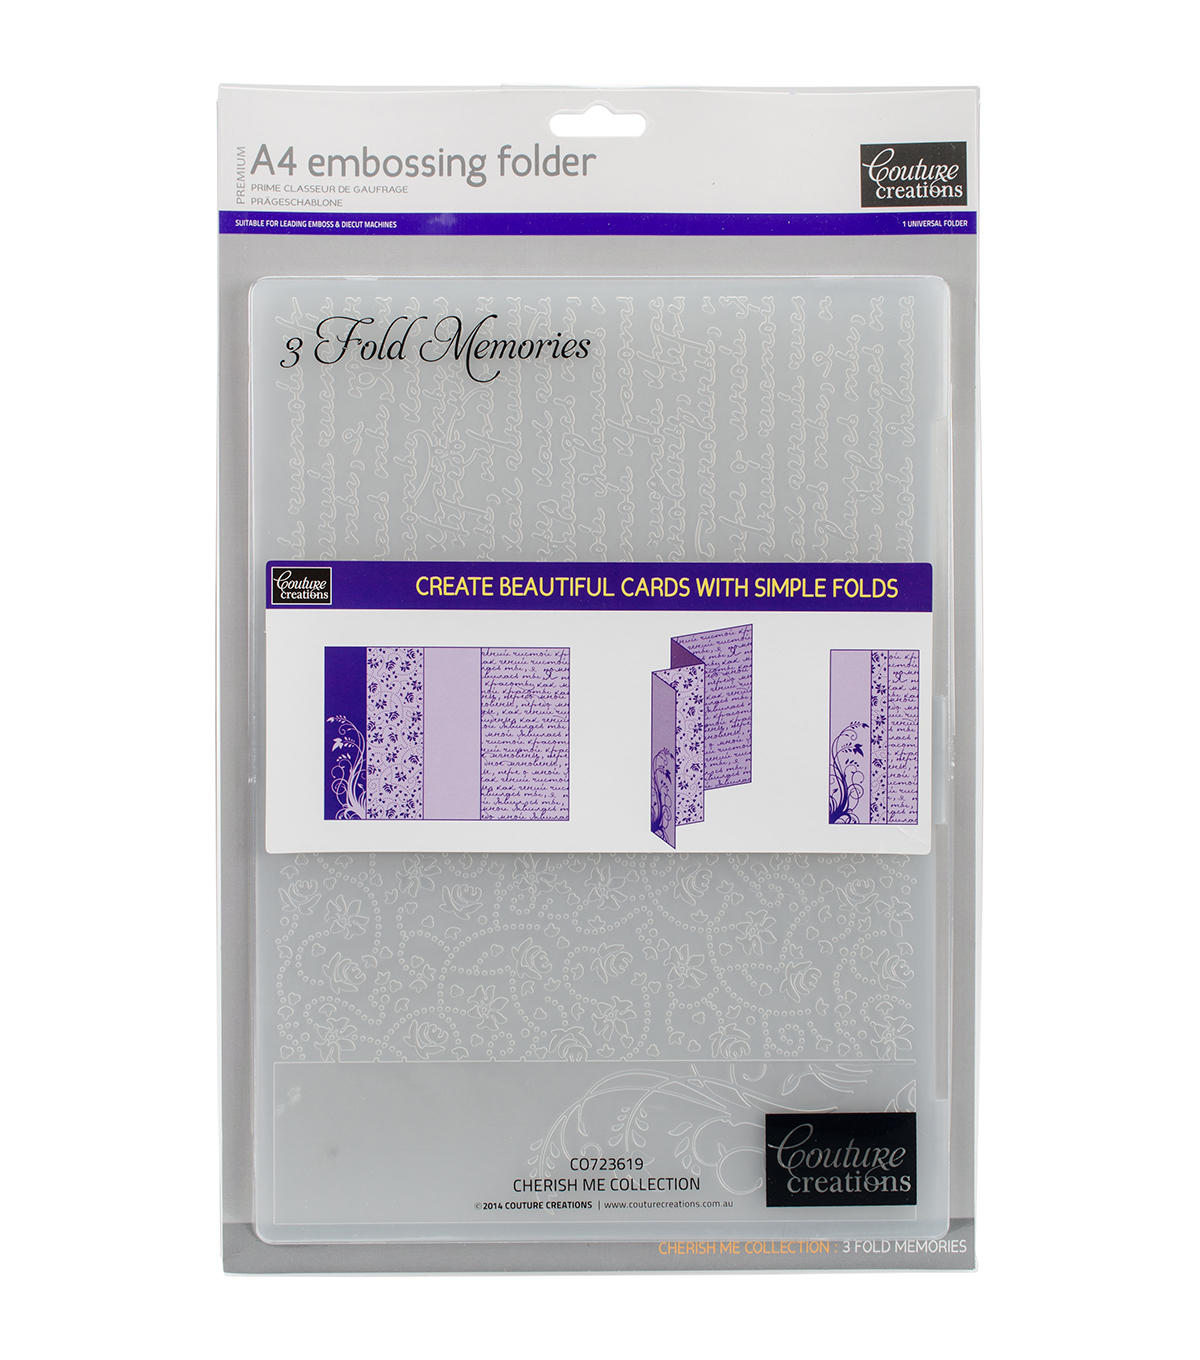 Couture Creations A4 Embossing Folder-3 Fold Memories